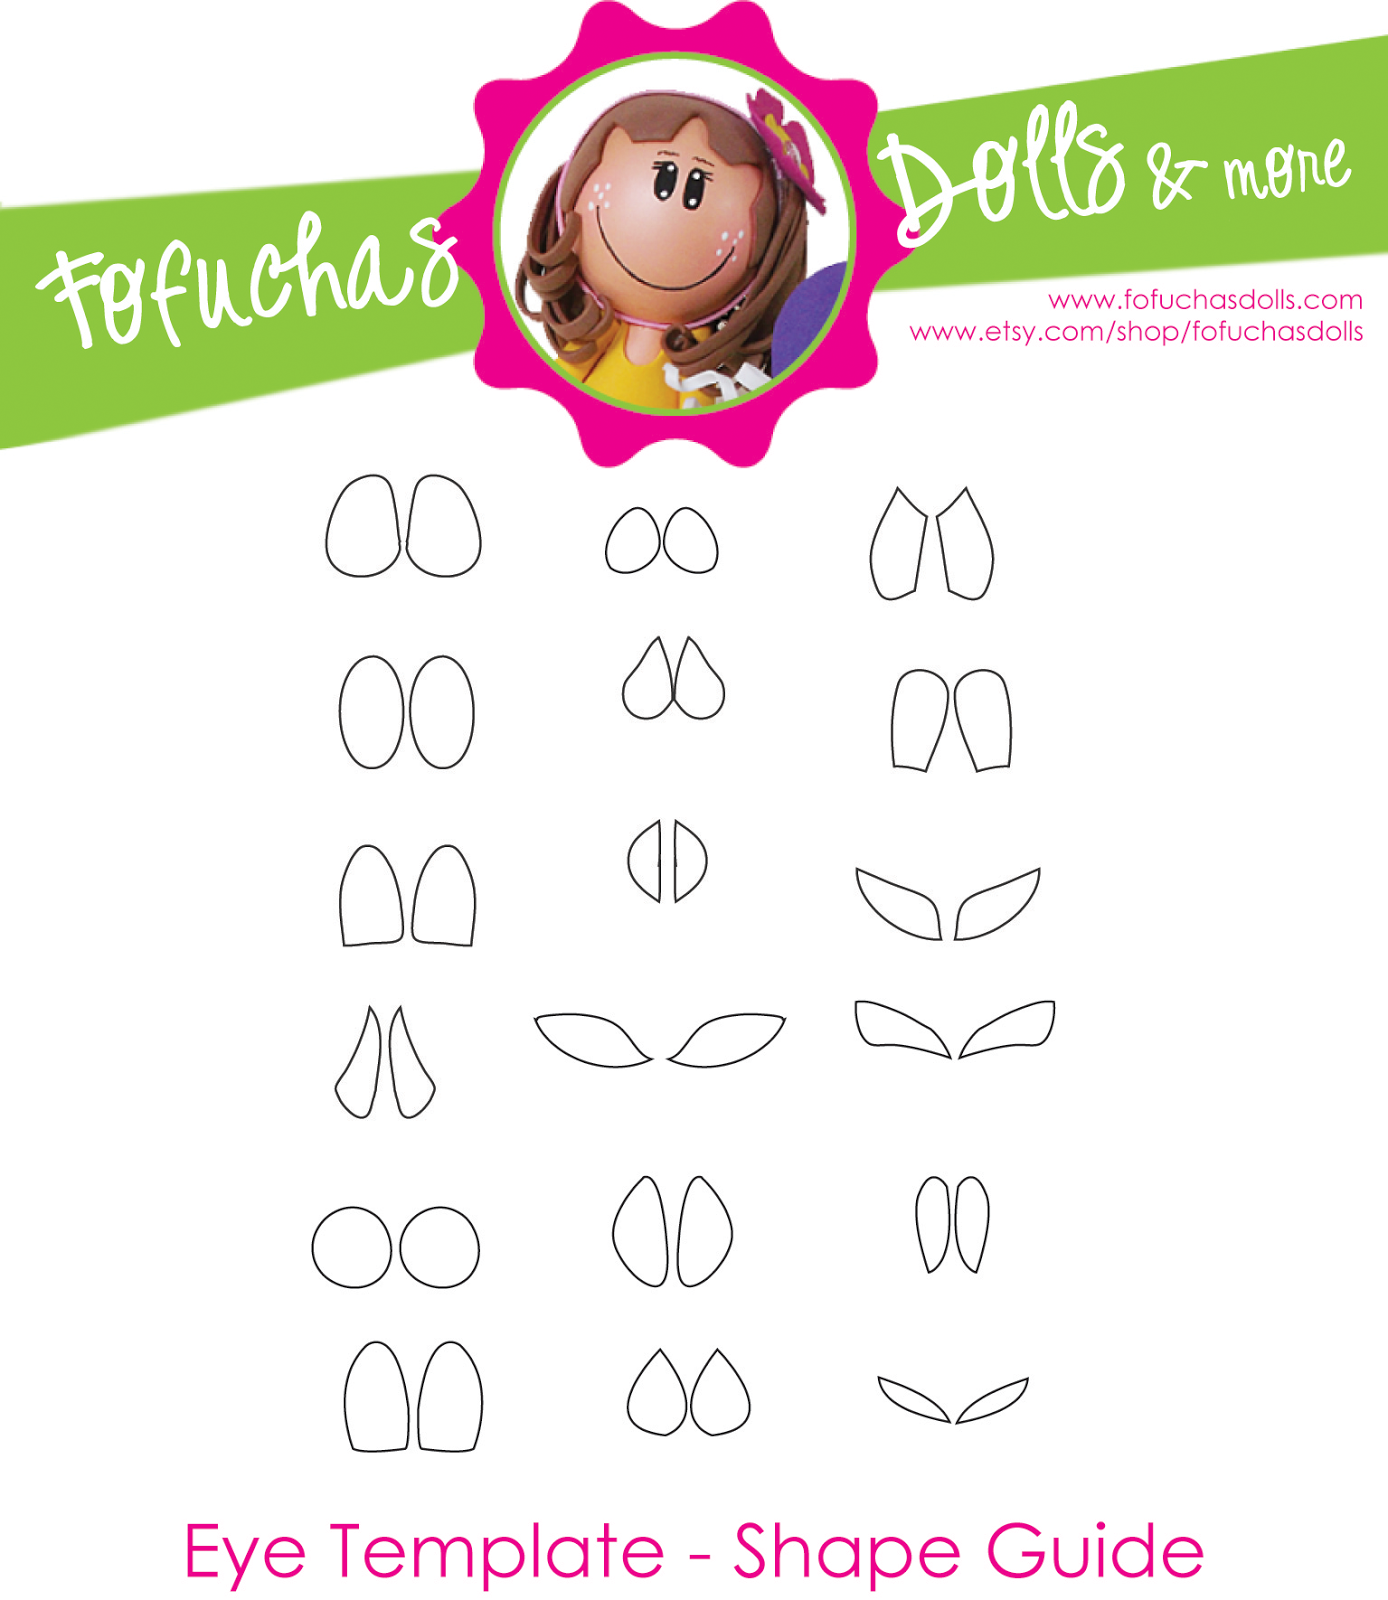 The Eye Template Shape Guide - 6 Pack